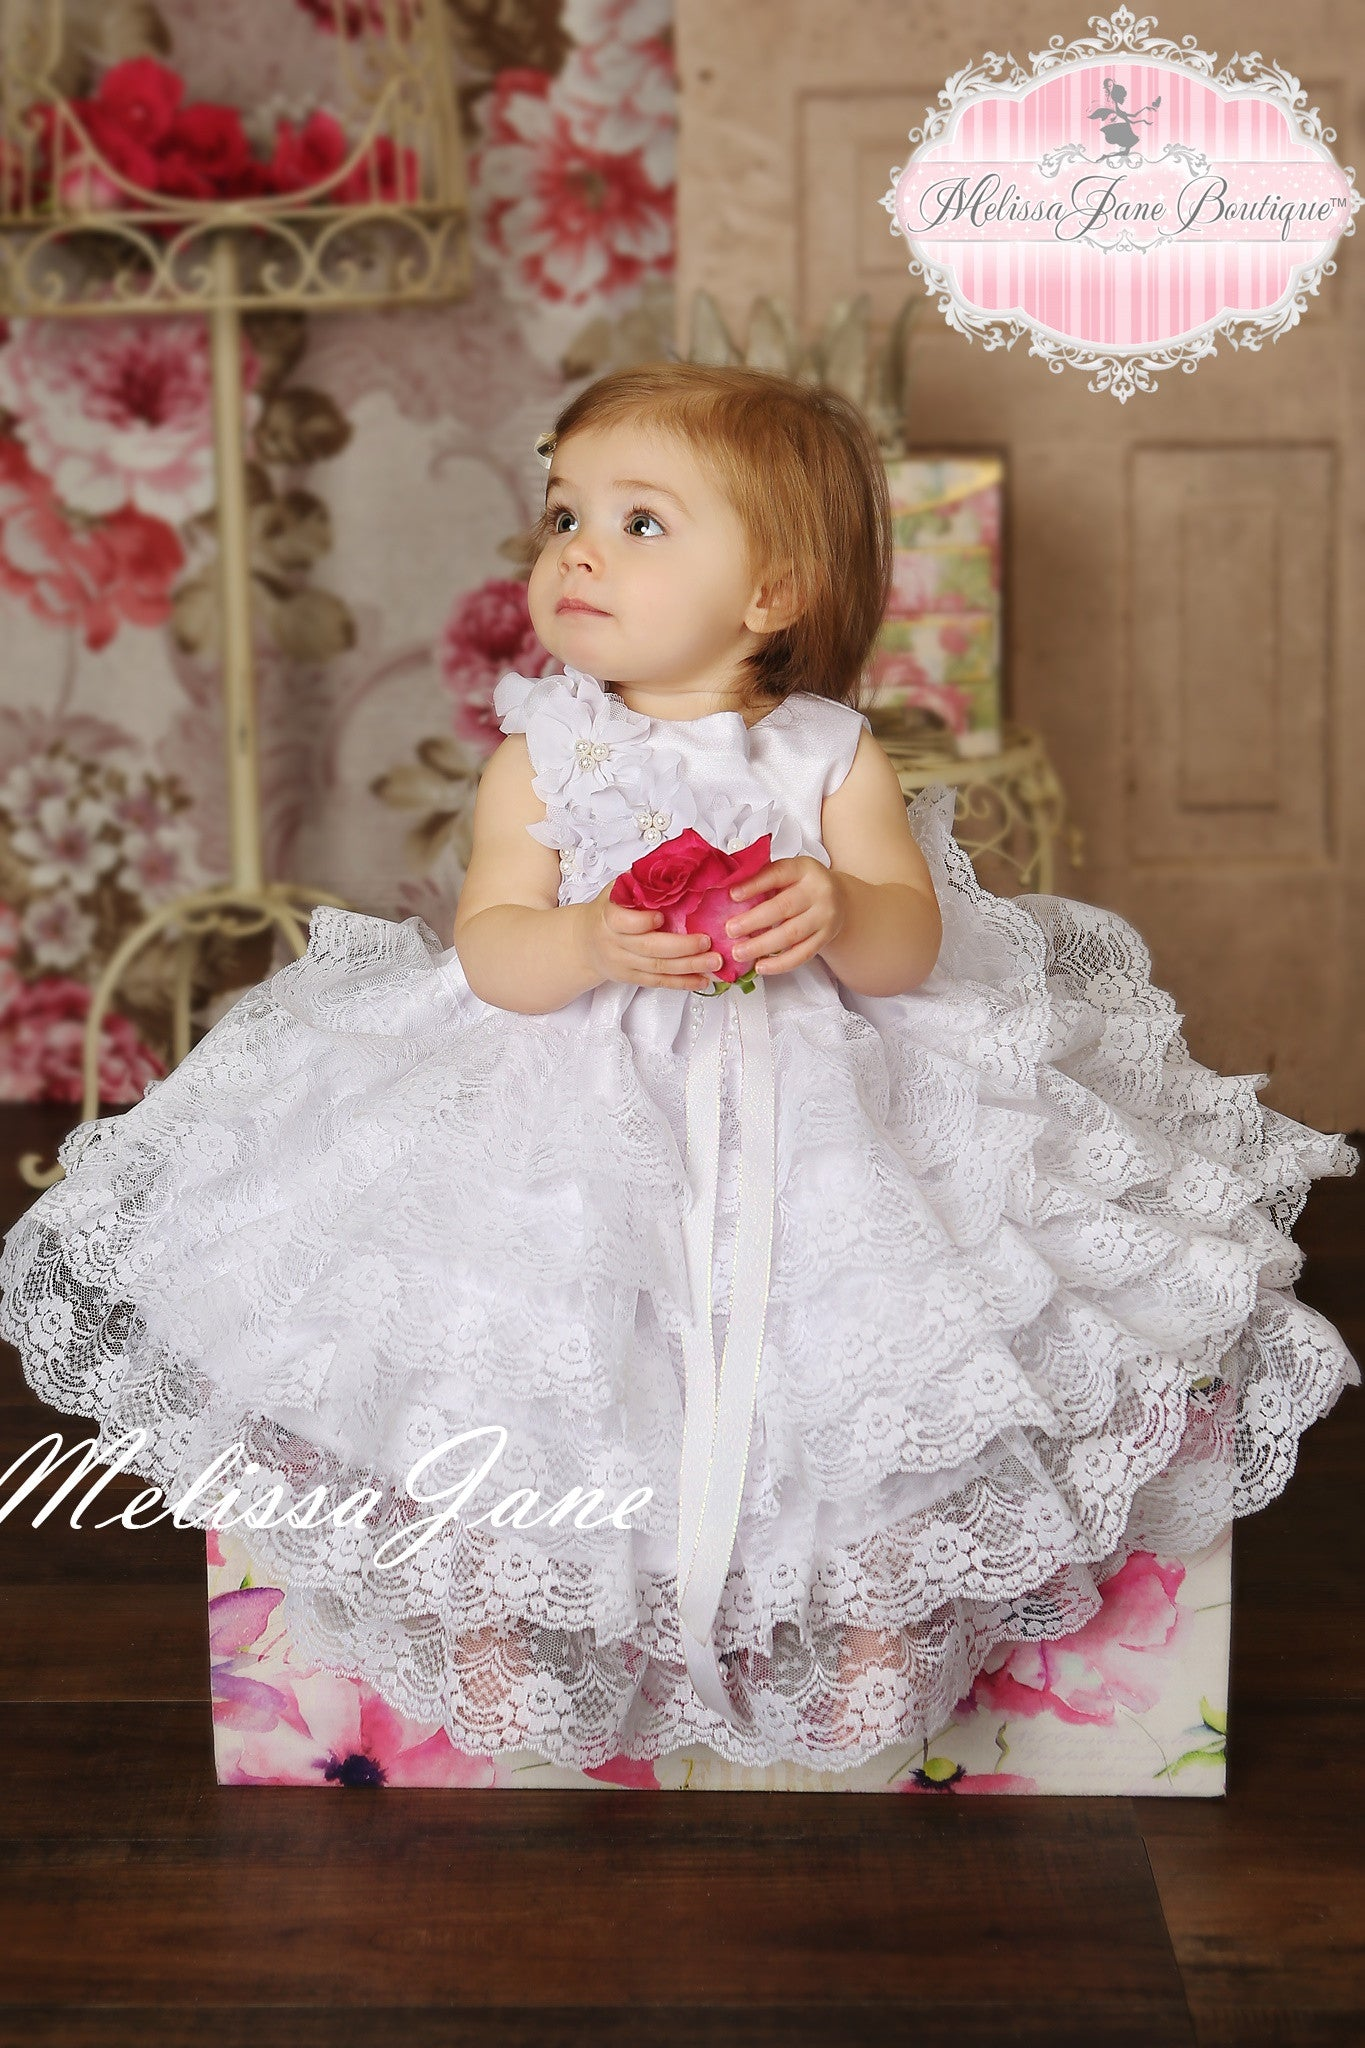 Be My Baby Princess White Dress Melissajanedesigns Quality